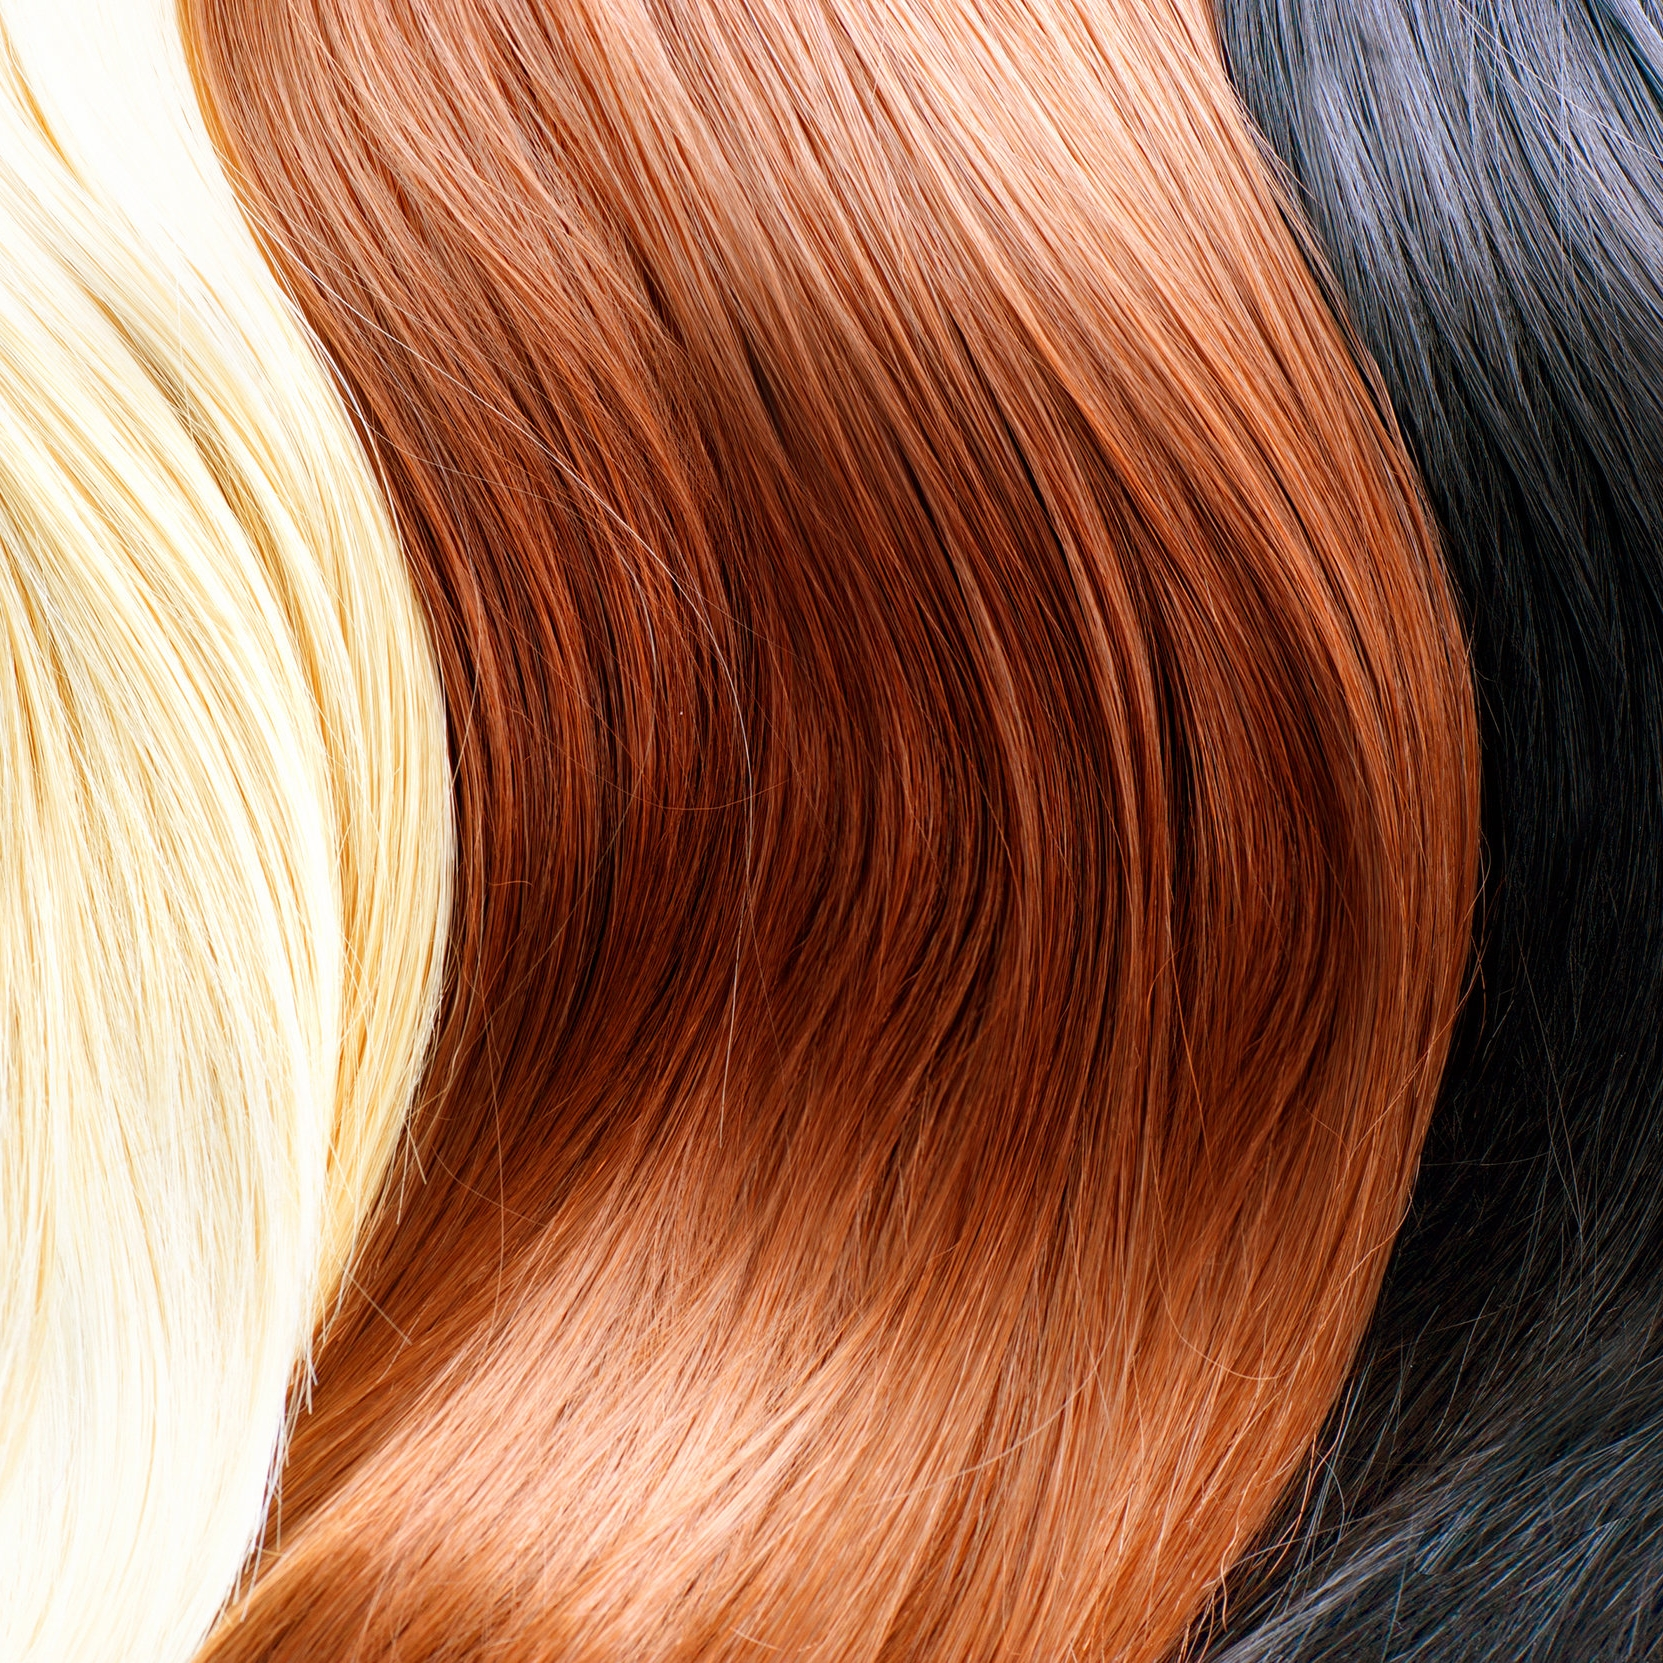 bigstock-Hair-Colors-Palette-Different-74759887.jpg